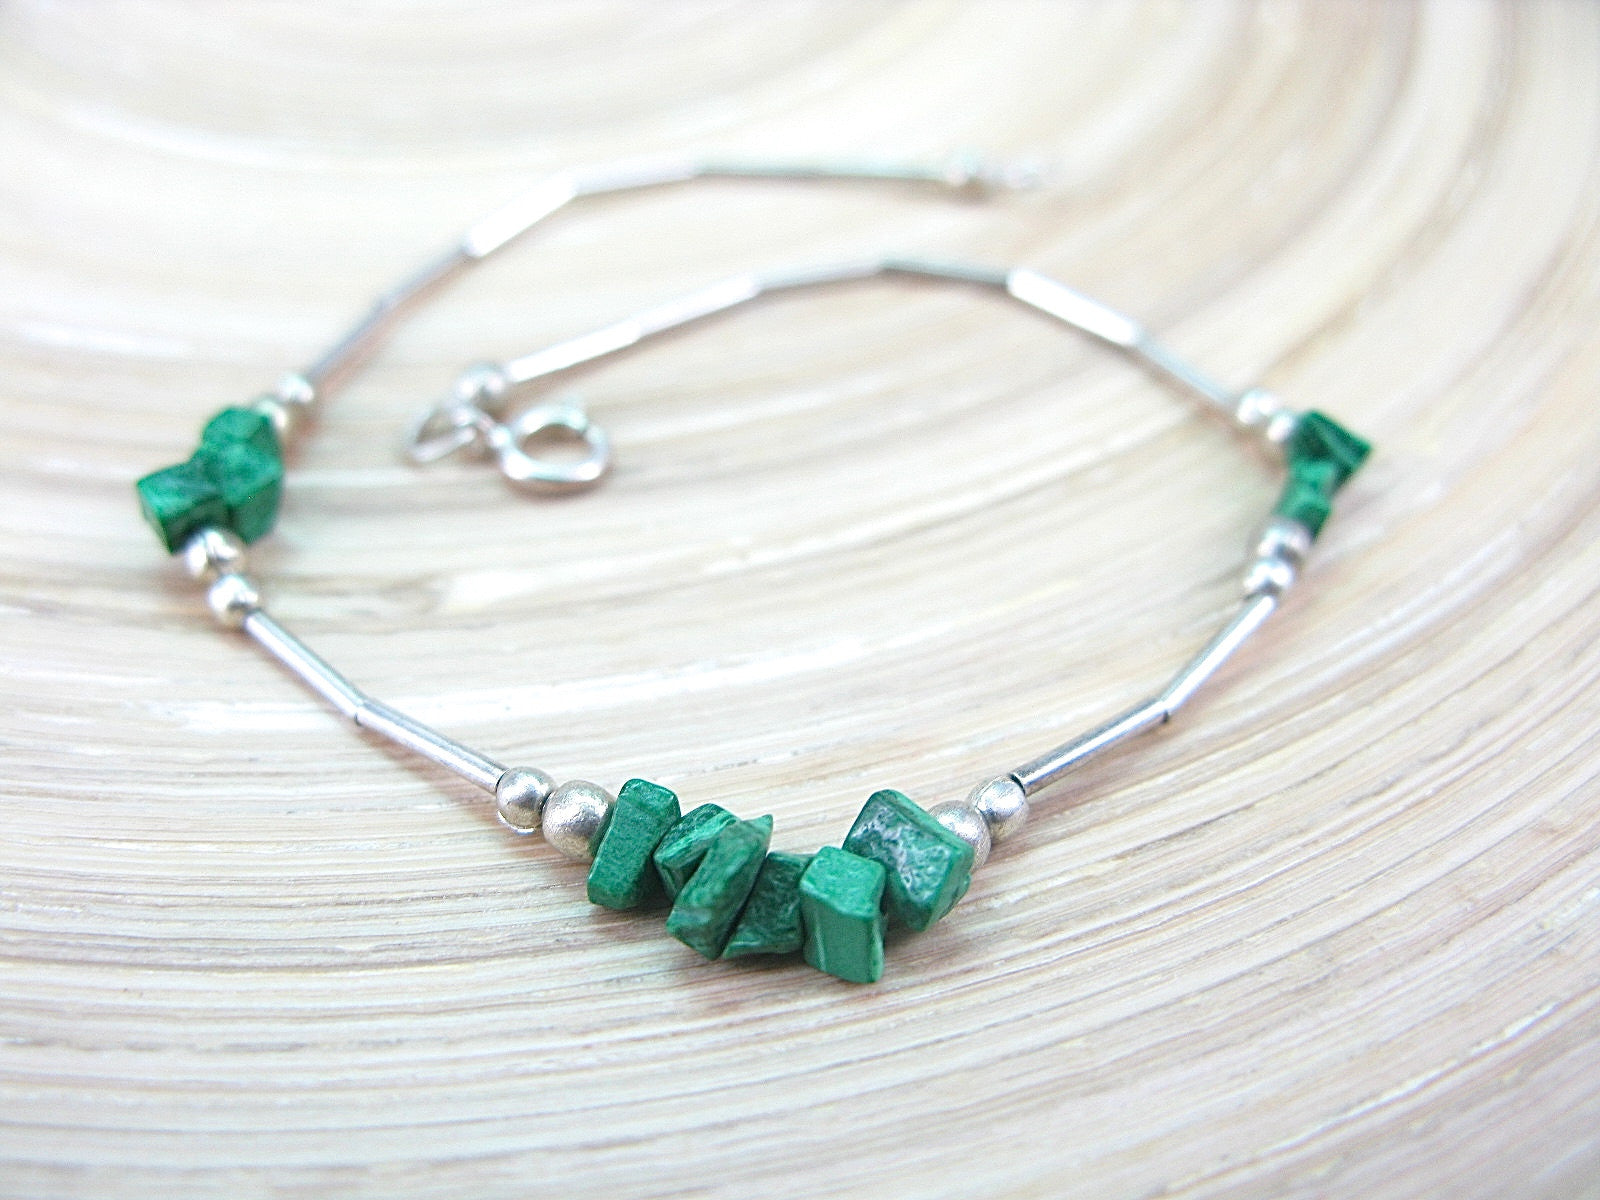 Malachite Bead Tribal Oxidized 925 Sterling Silver Bracelet Bracelet Faith Owl - Faith Owl